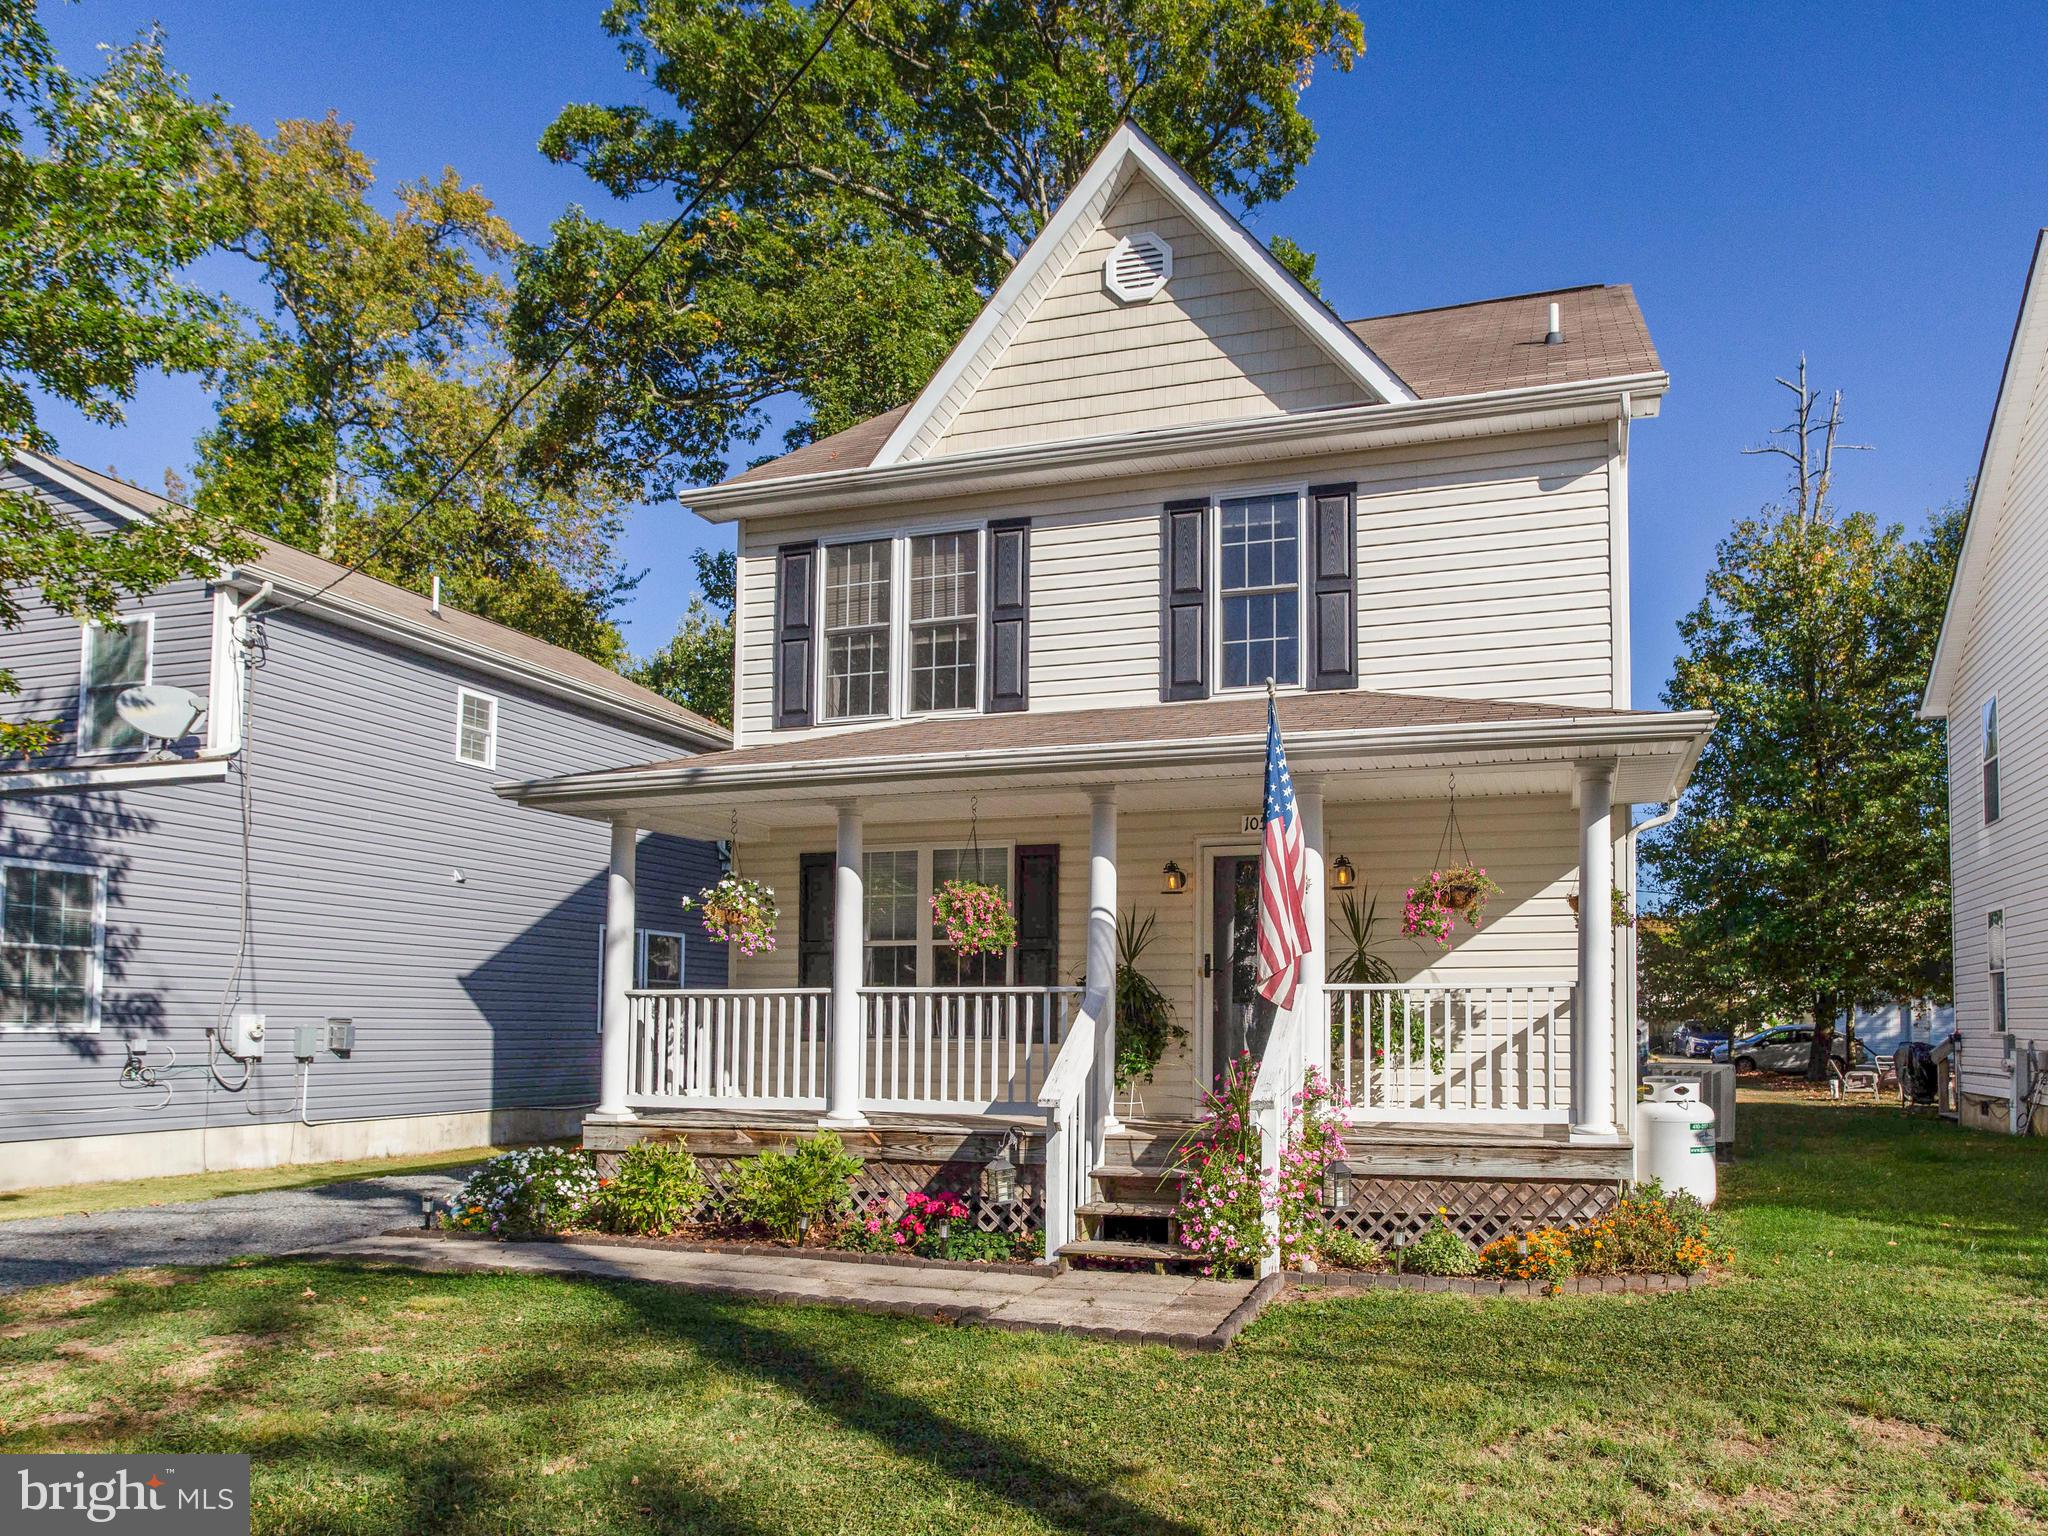 Outstanding opportunity to own this turn-key home seconds from the Chesapeake Bay with seasonal wate